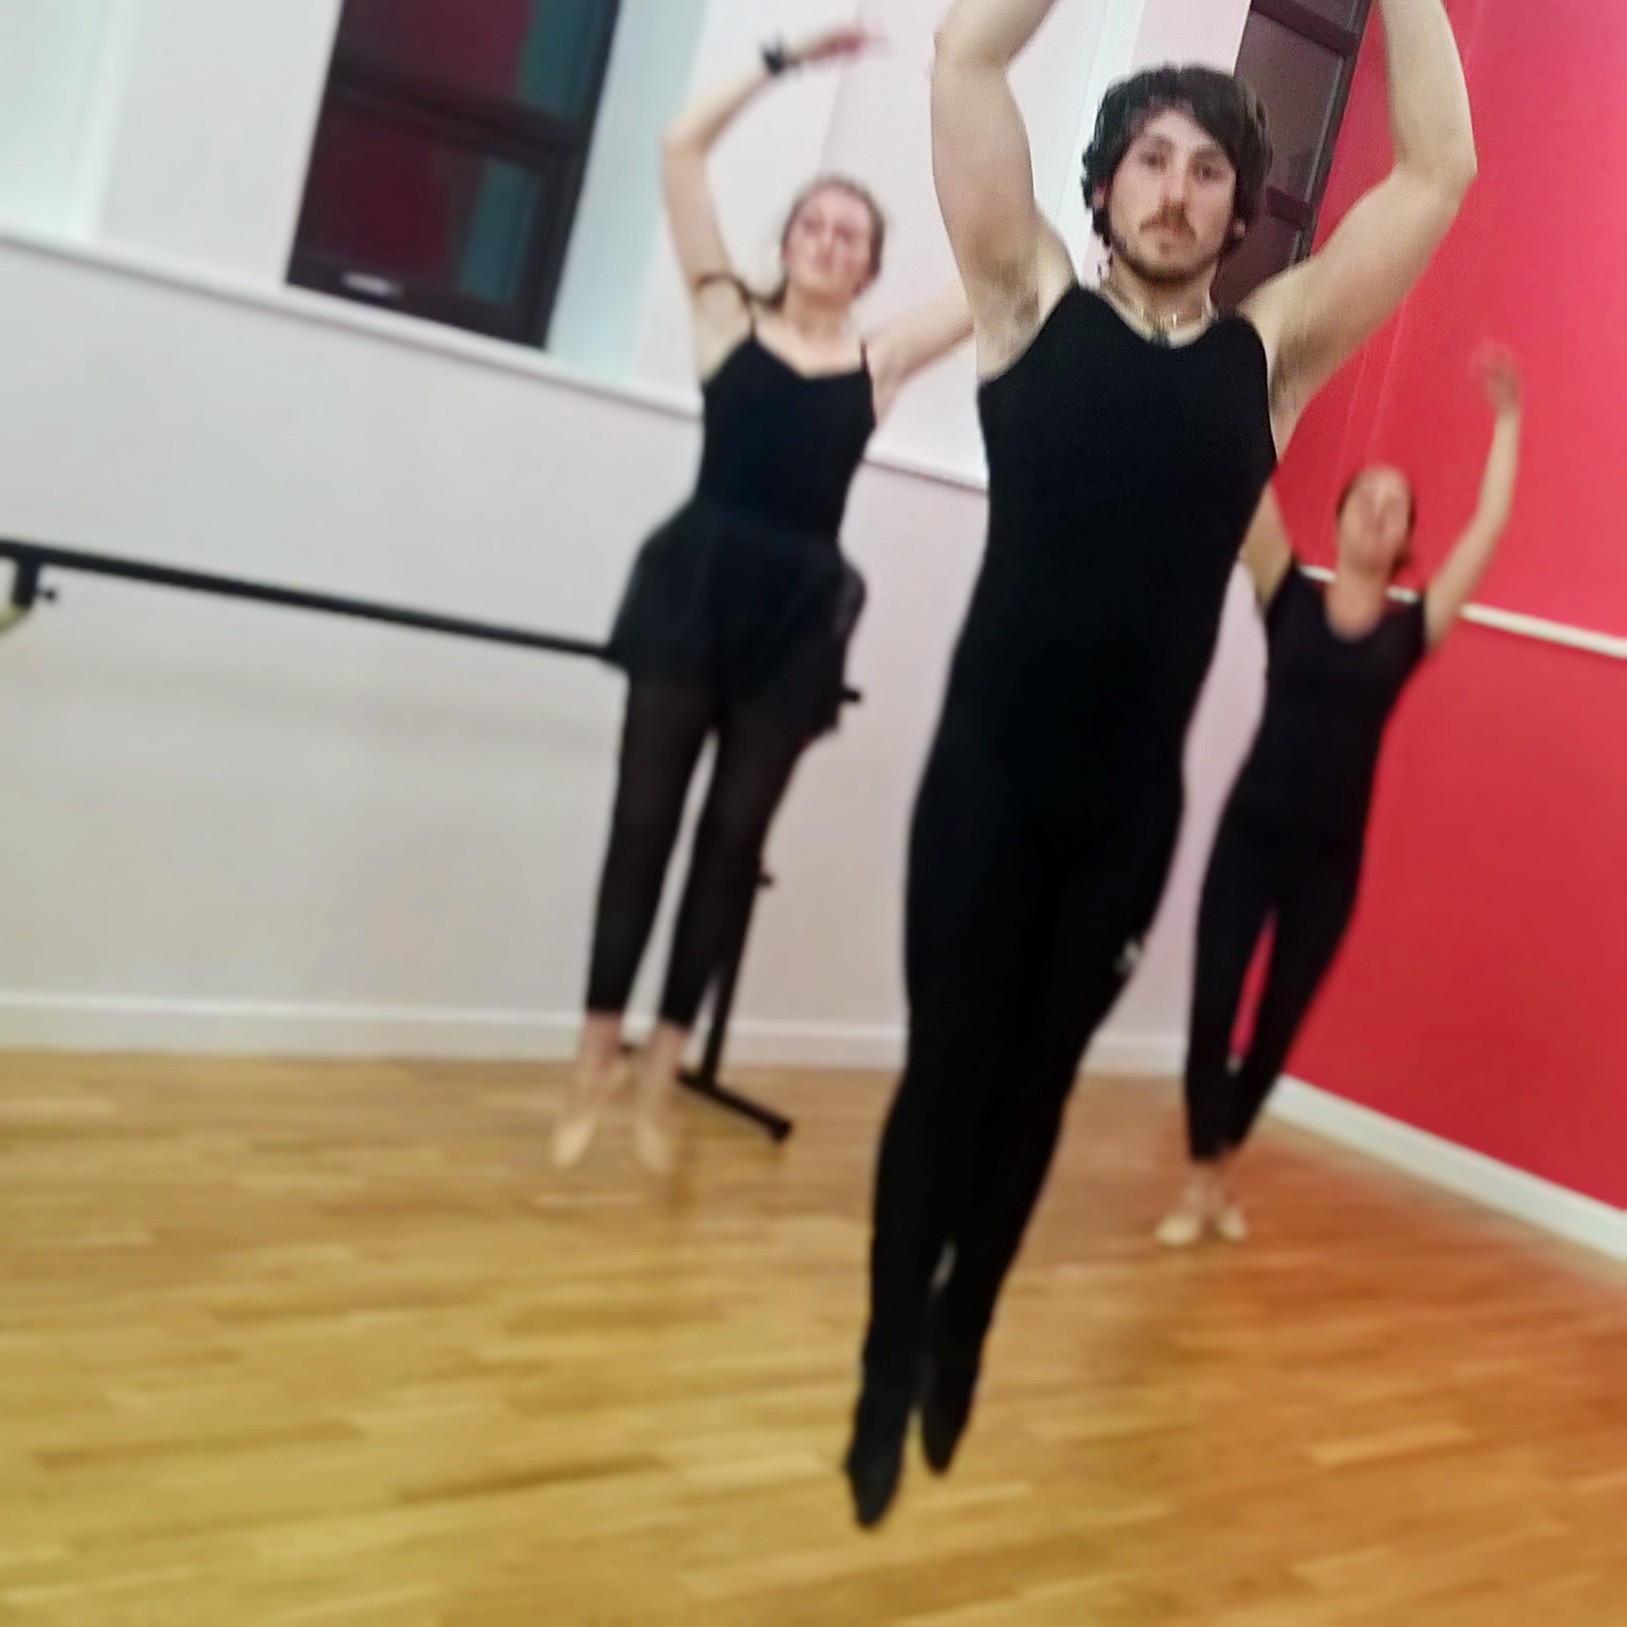 Adult Ballet Class for men and women at SK Dance Studio Wigan